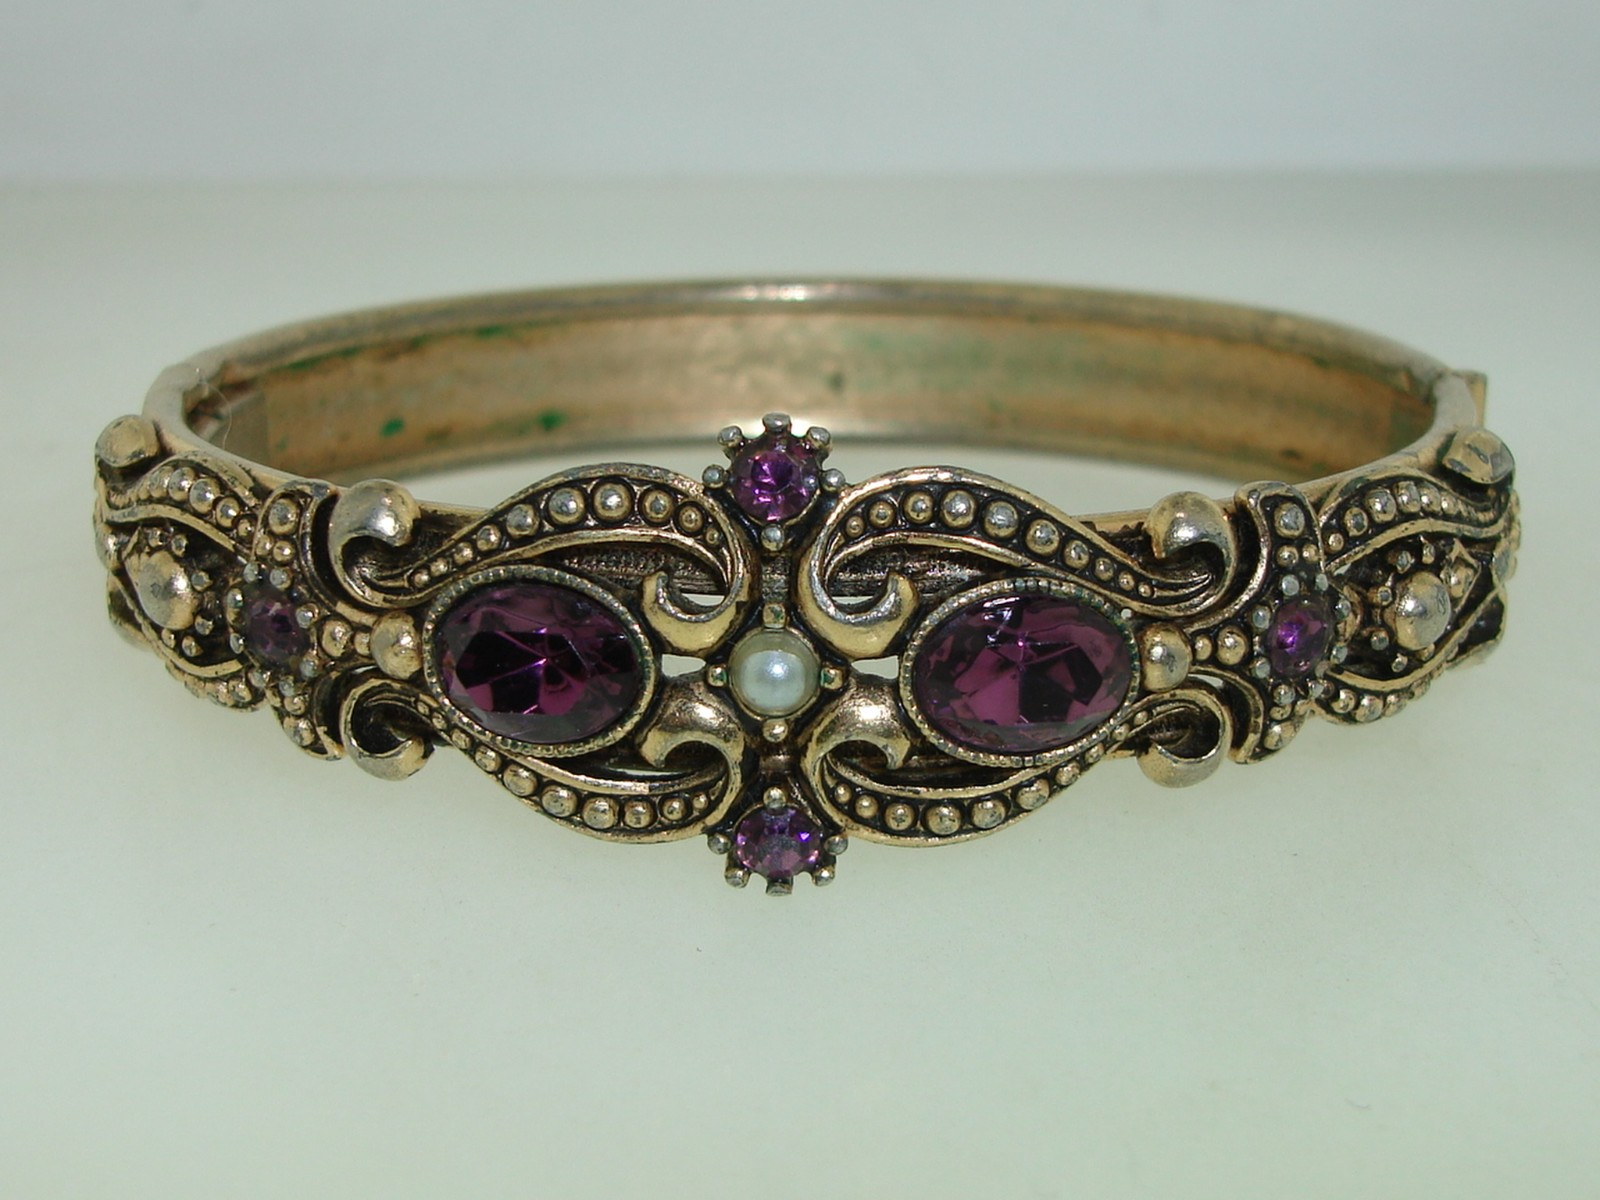 Vintage 1974 Avon Queensbury Ornate Faux Amethyst Hinged